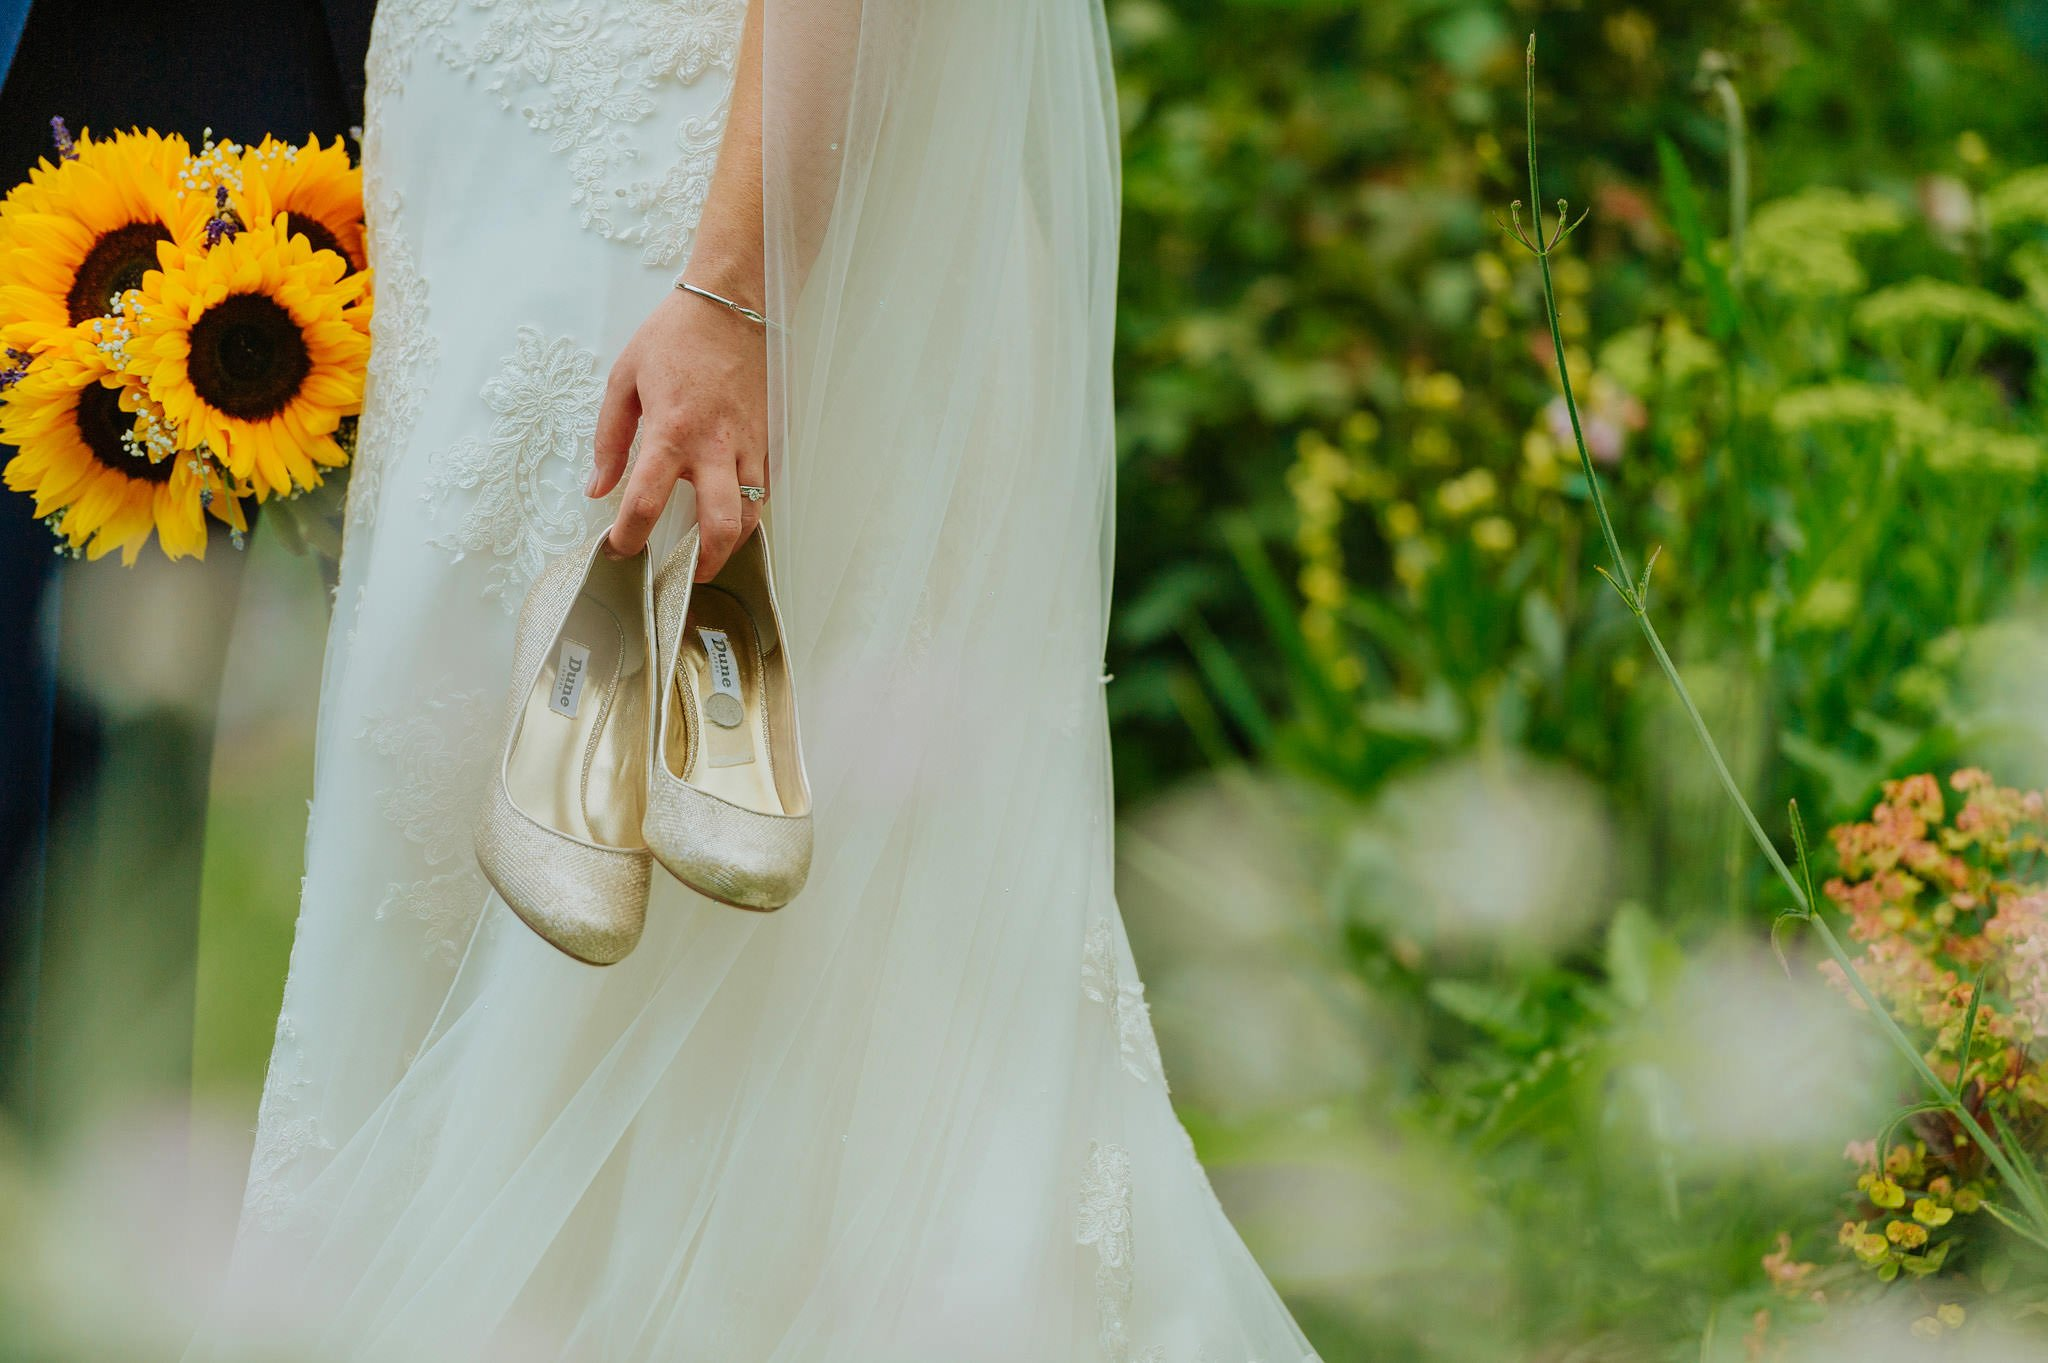 Wedding photography at Homme House in Herefordshire, West Midlands 65